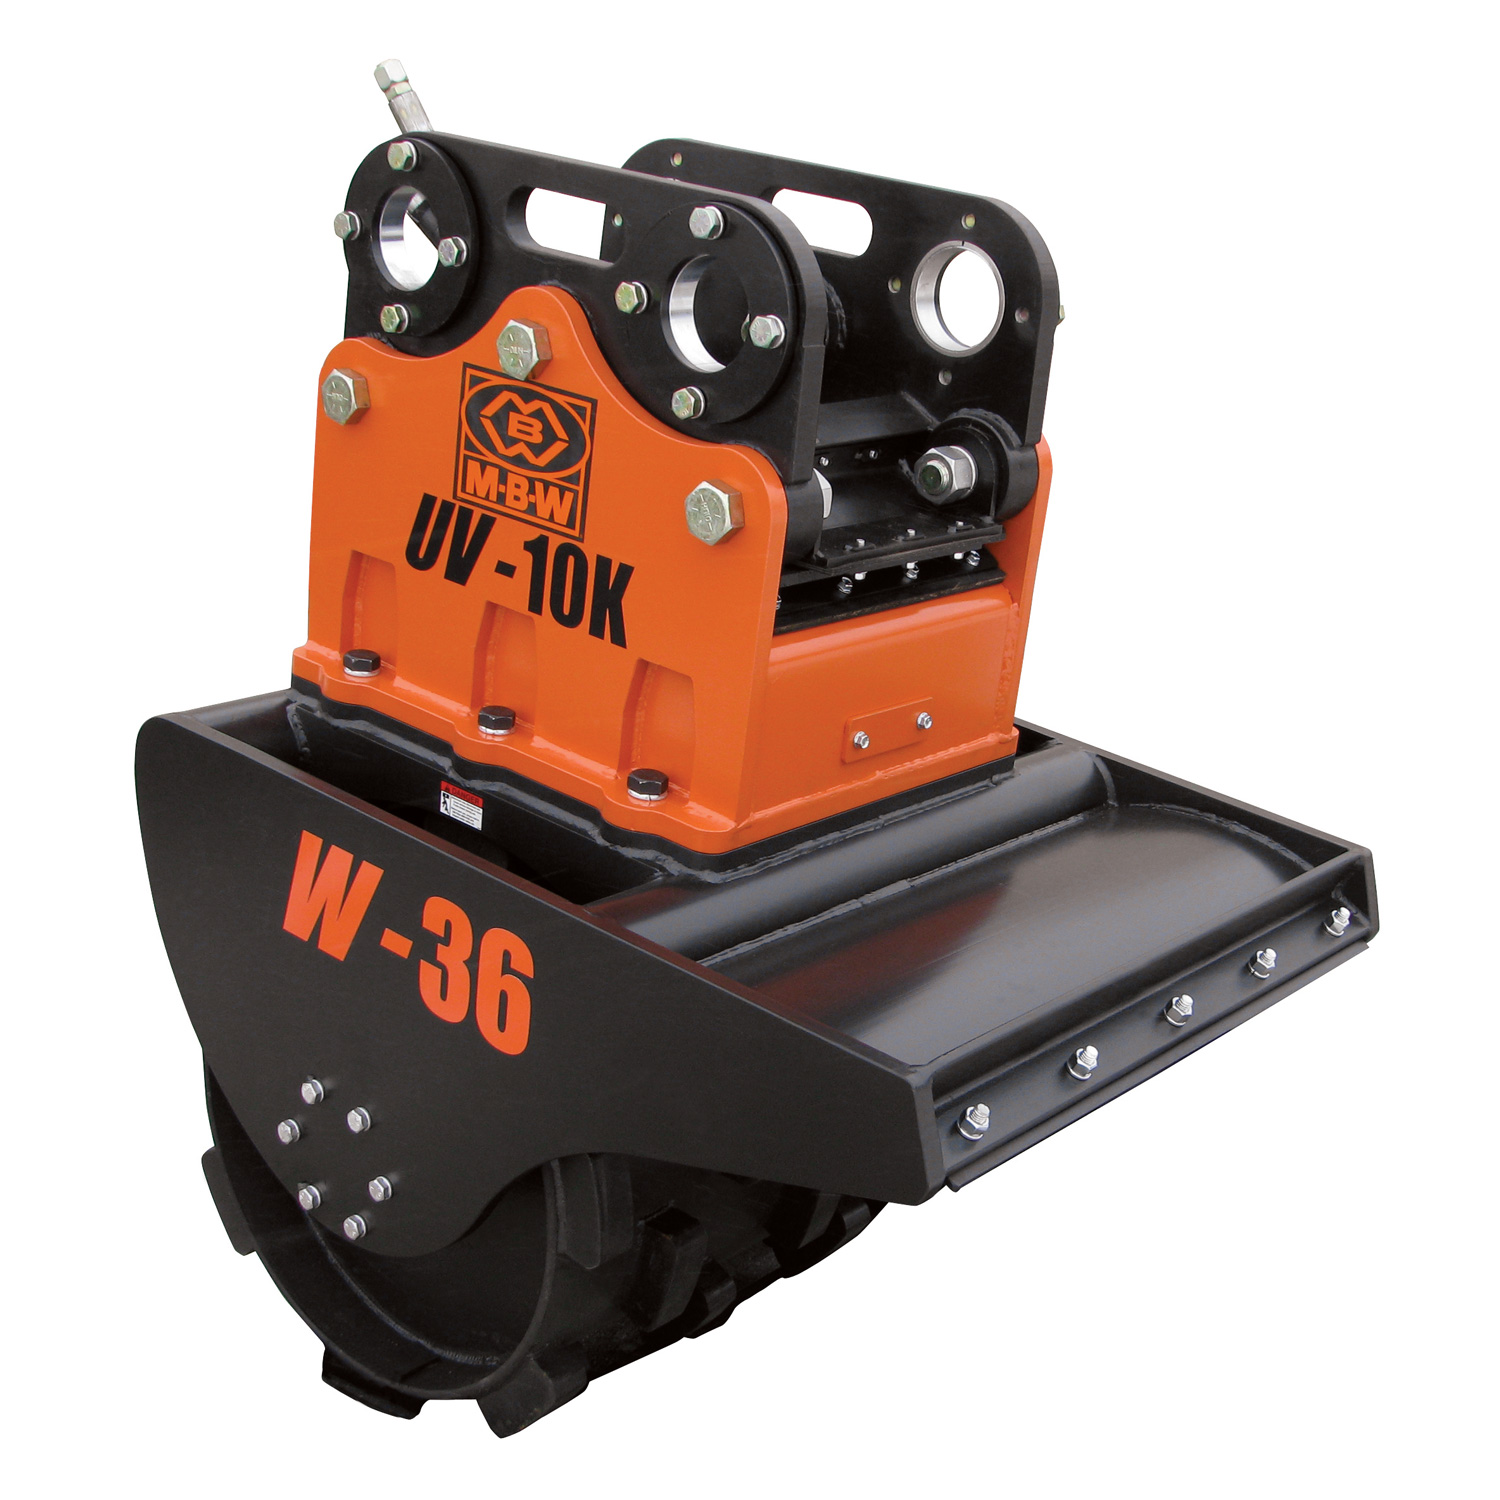 MBW Roller Attachments